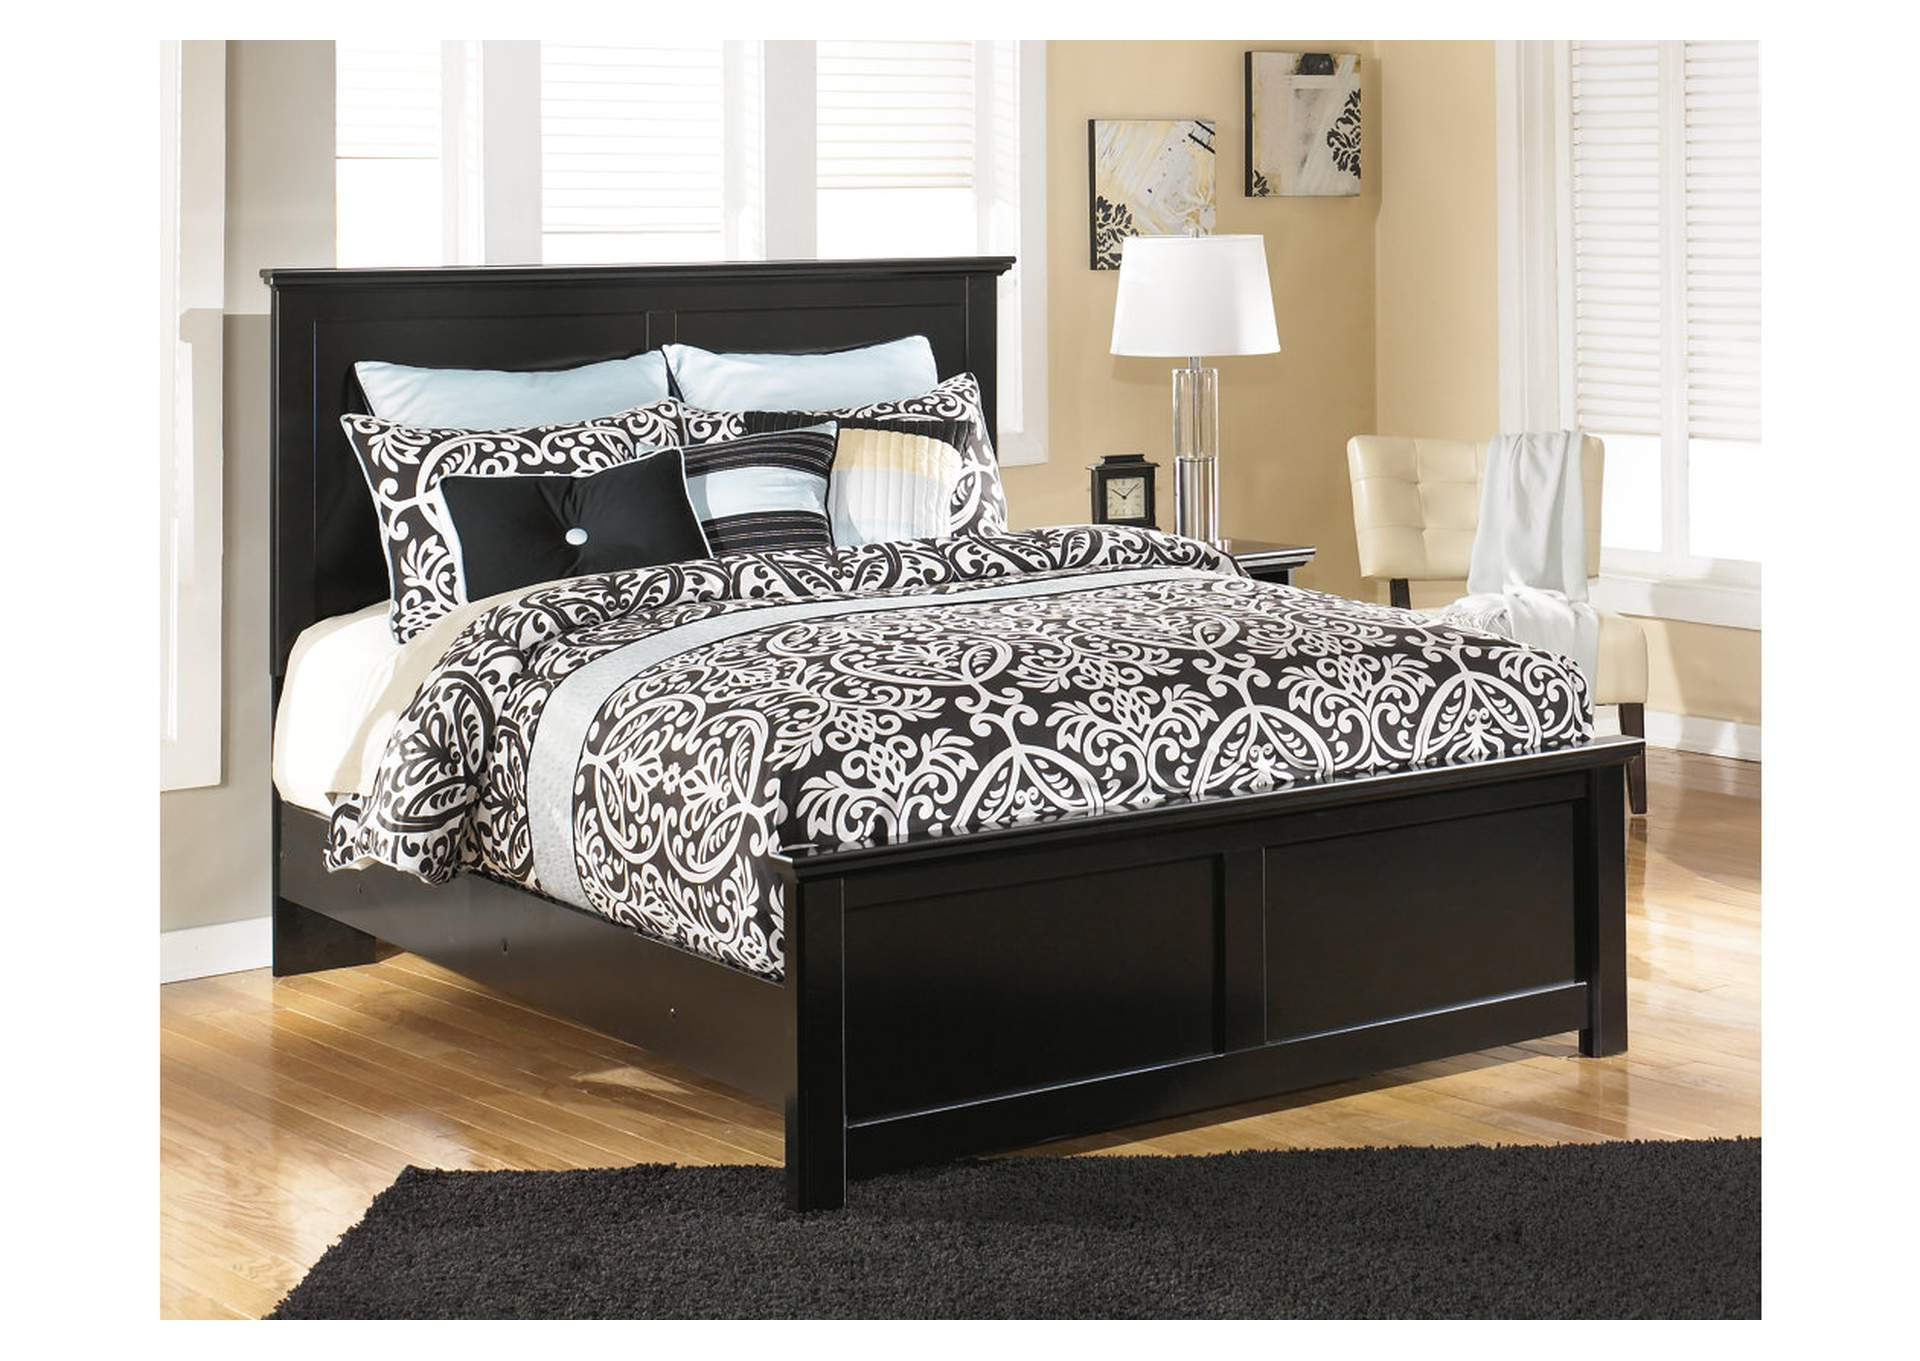 Maribel Queen Panel Bed,Signature Design By Ashley